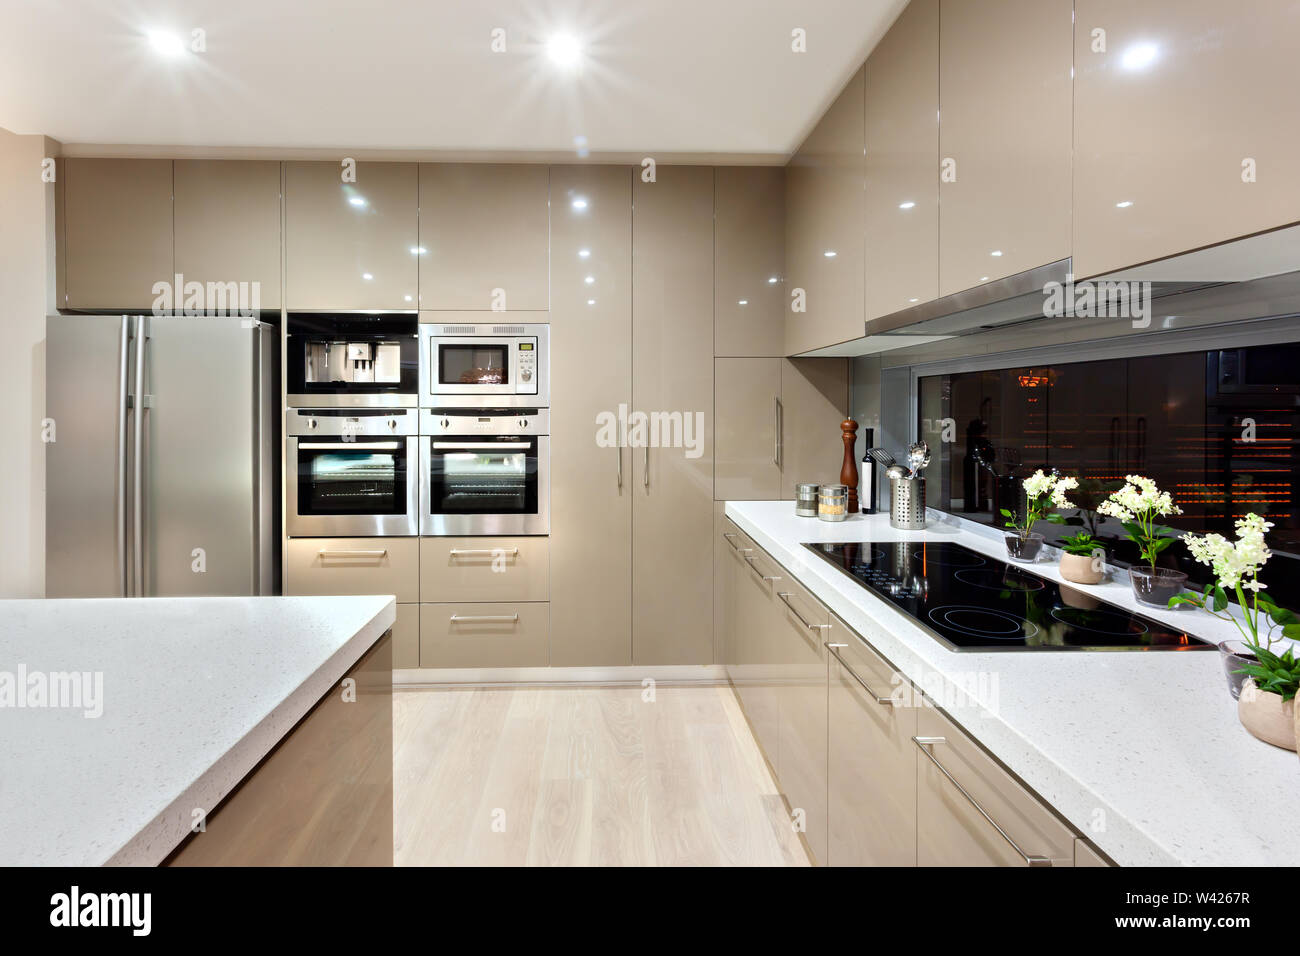 There are lots of wall cabinets and pantry cupboard fixed to the wall with A silver refrigerator and microwave oven. There are two ceramic countertops Stock Photo